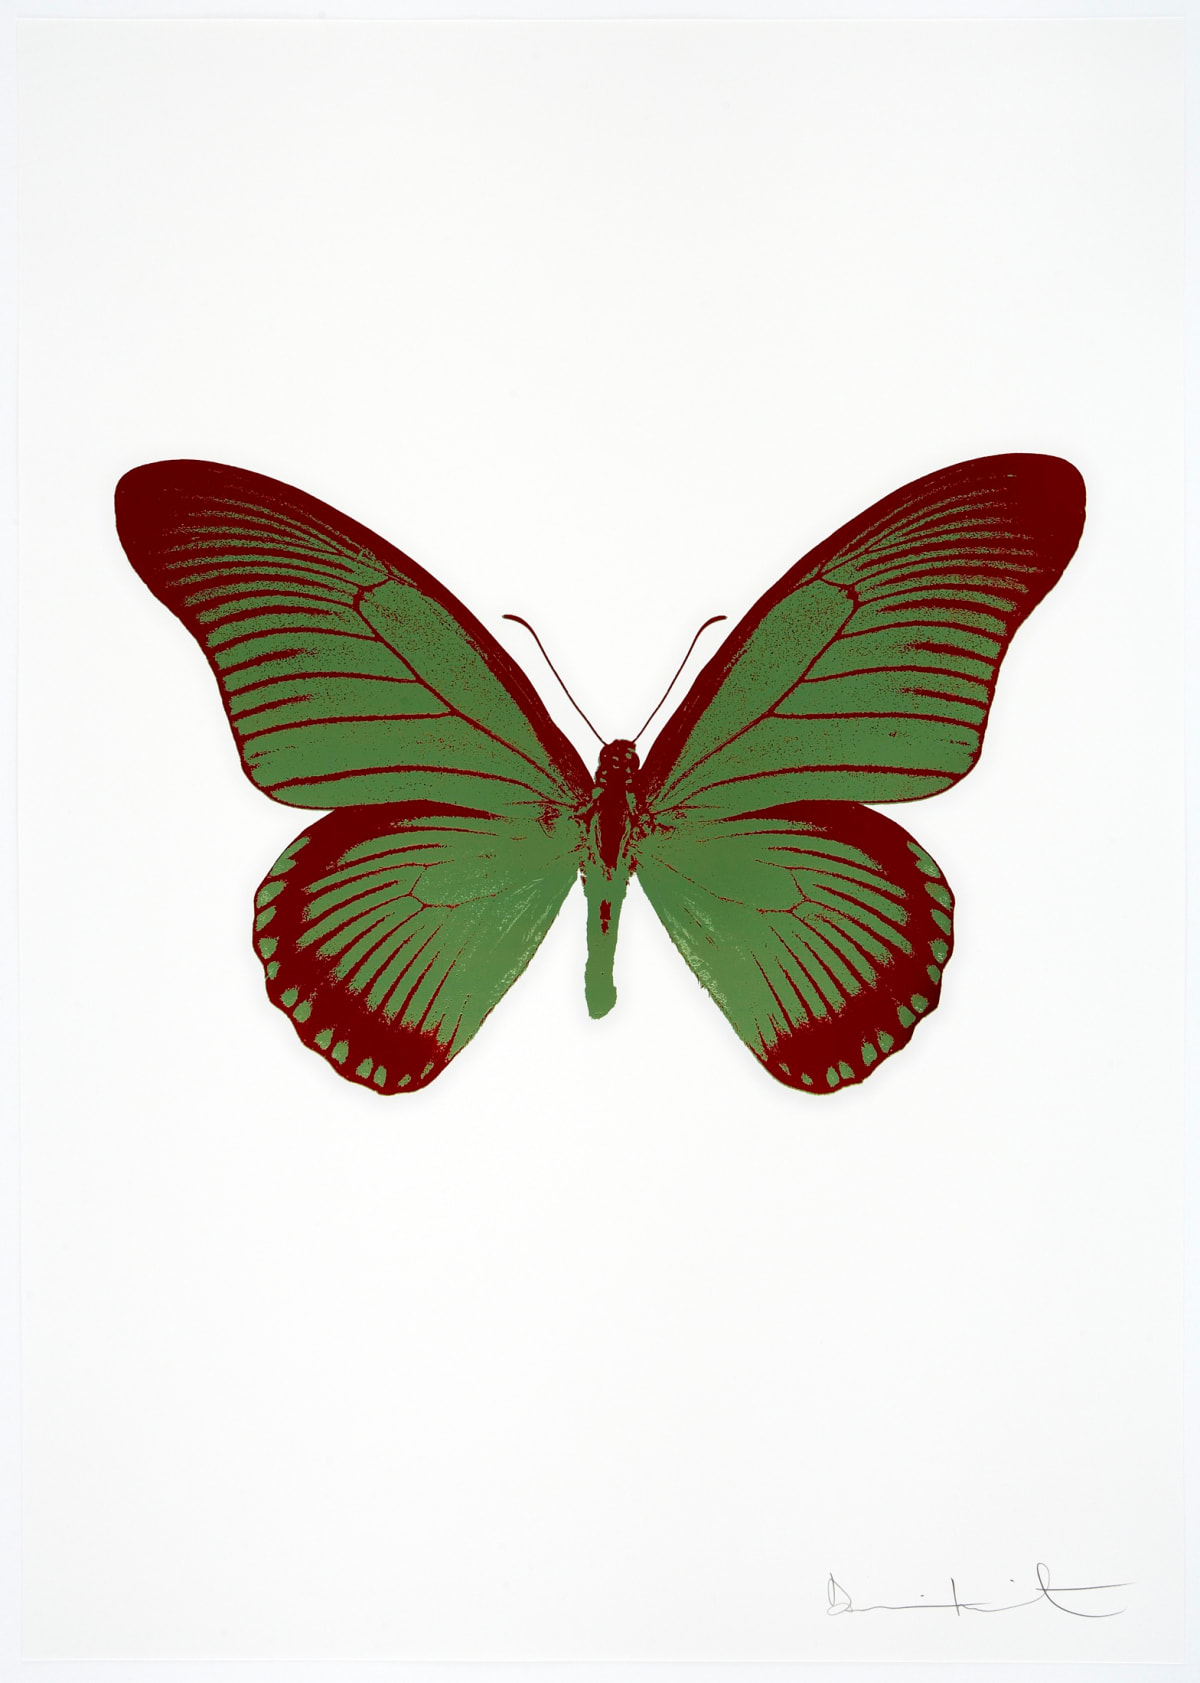 Damien Hirst The Souls IV - Leaf Green/Chilli Red, 2010 2 colour foil block on 300gsm Arches 88 archival paper. Signed and numbered. Published by Paul Stolper and Other Criteria 72 x 51cm OC8002 / 1418-25 Edition of 15